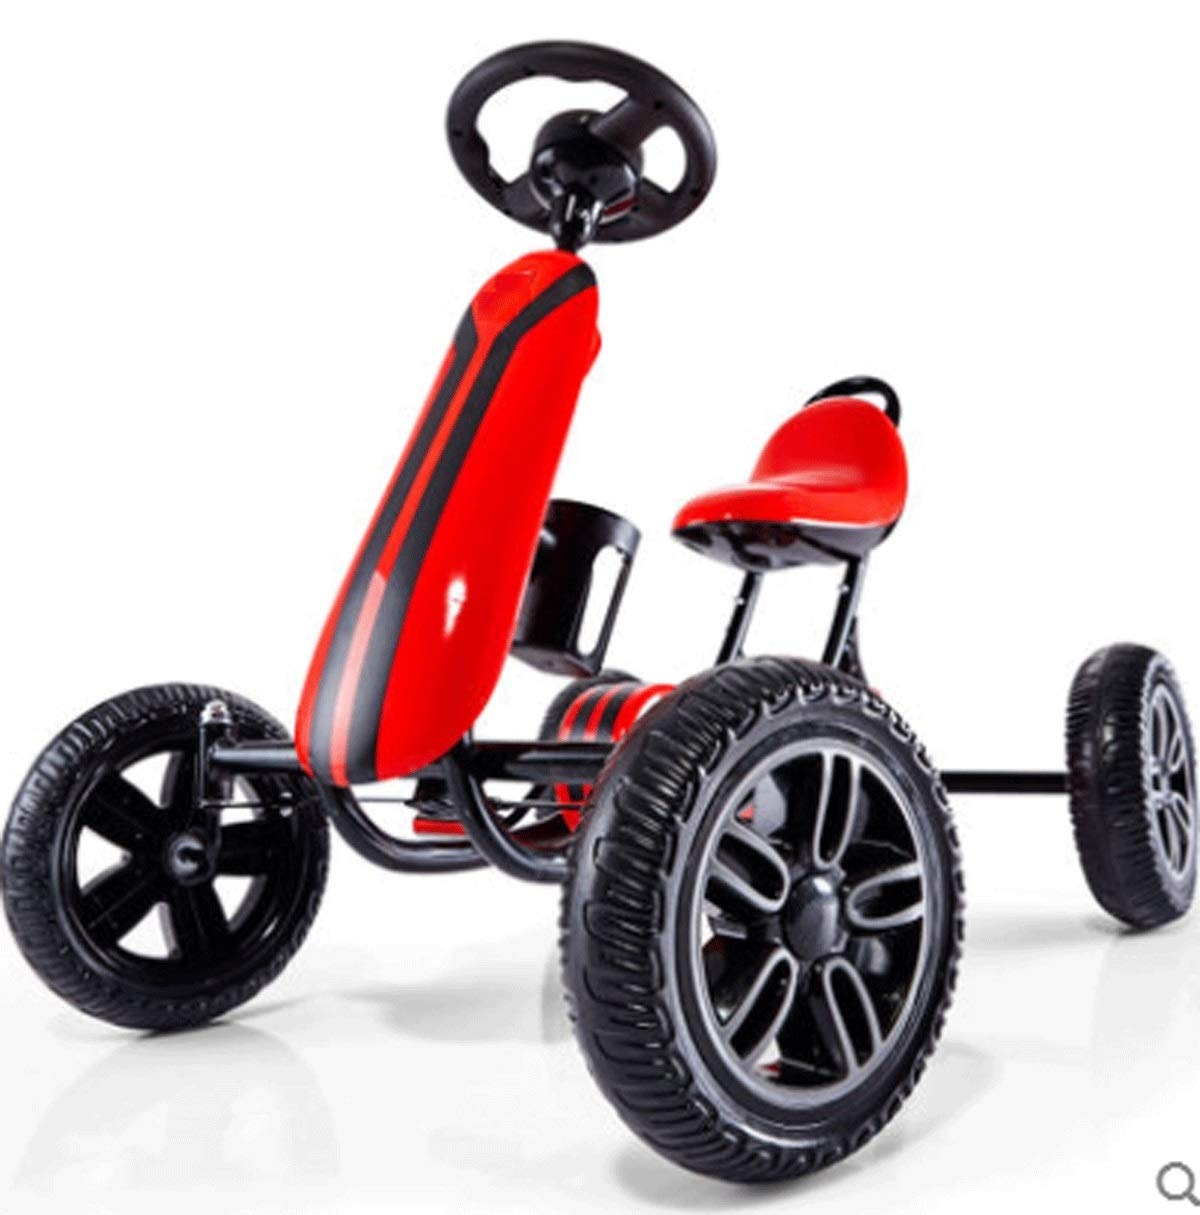 Children's Kart Toy Car Stroller Exercise Bike Four-Wheeled Bicycle ATV Baby Bicycle